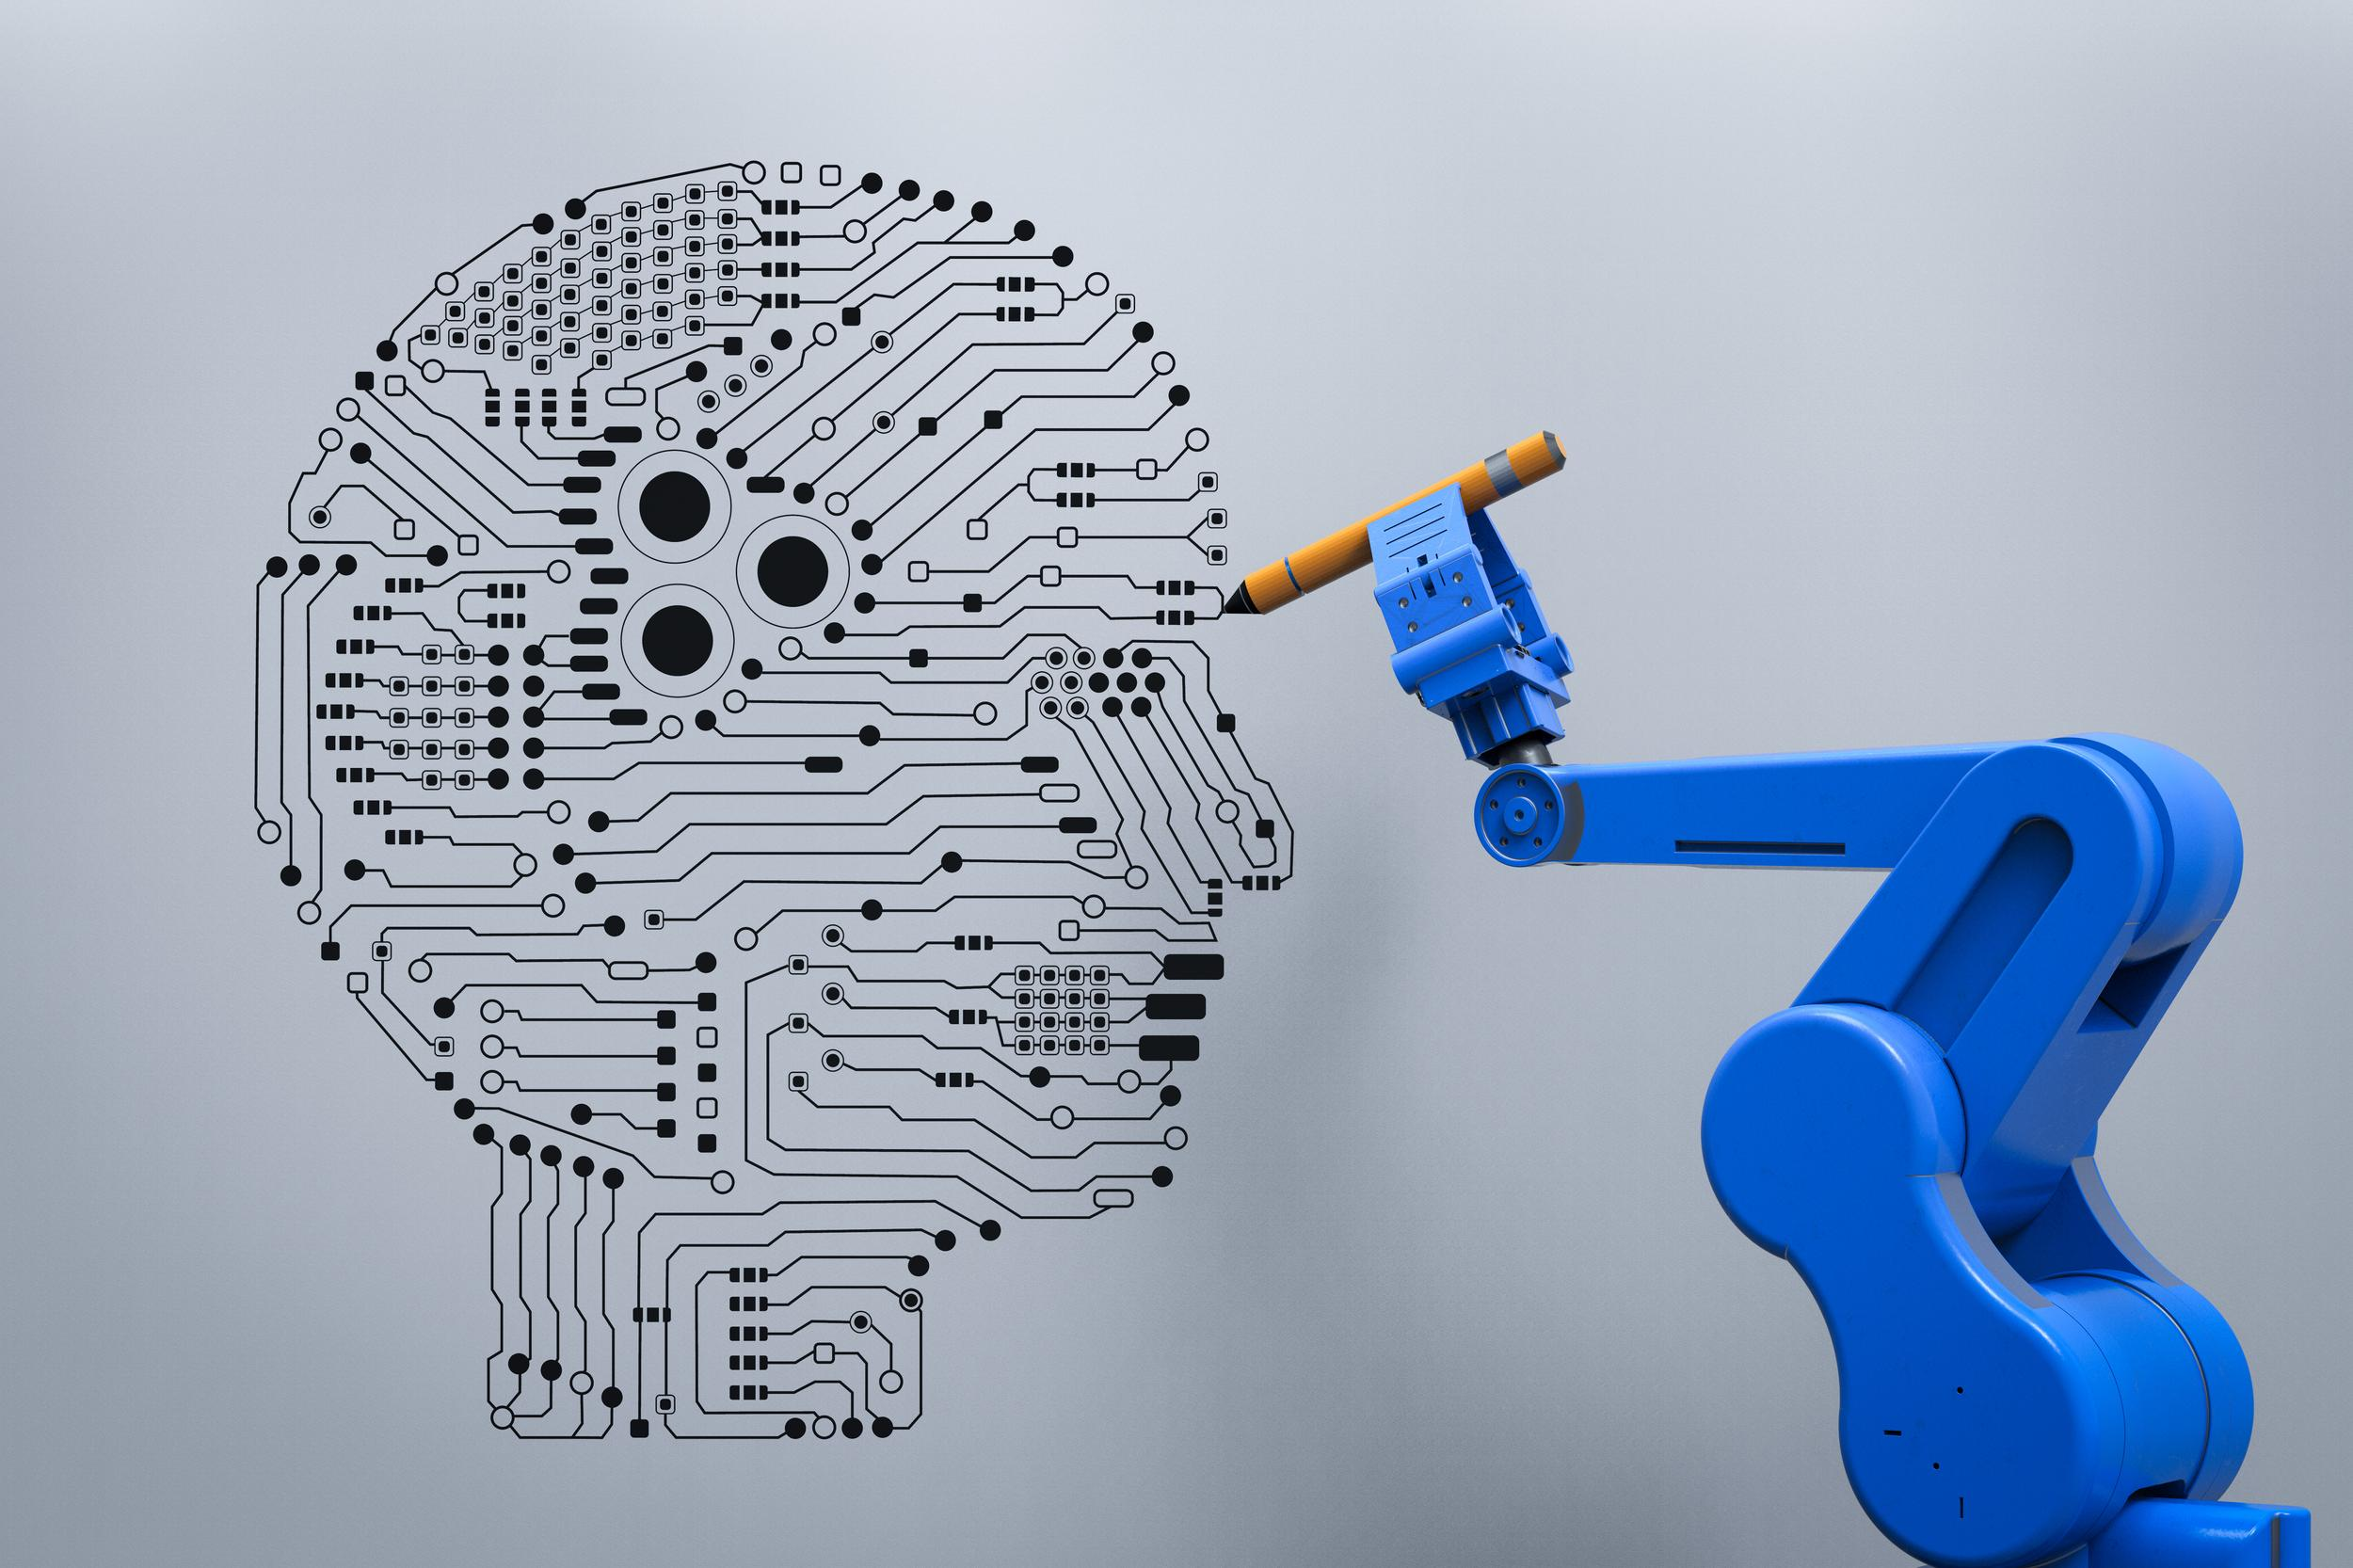 the best way to prepare for artificial intelligence in public relations